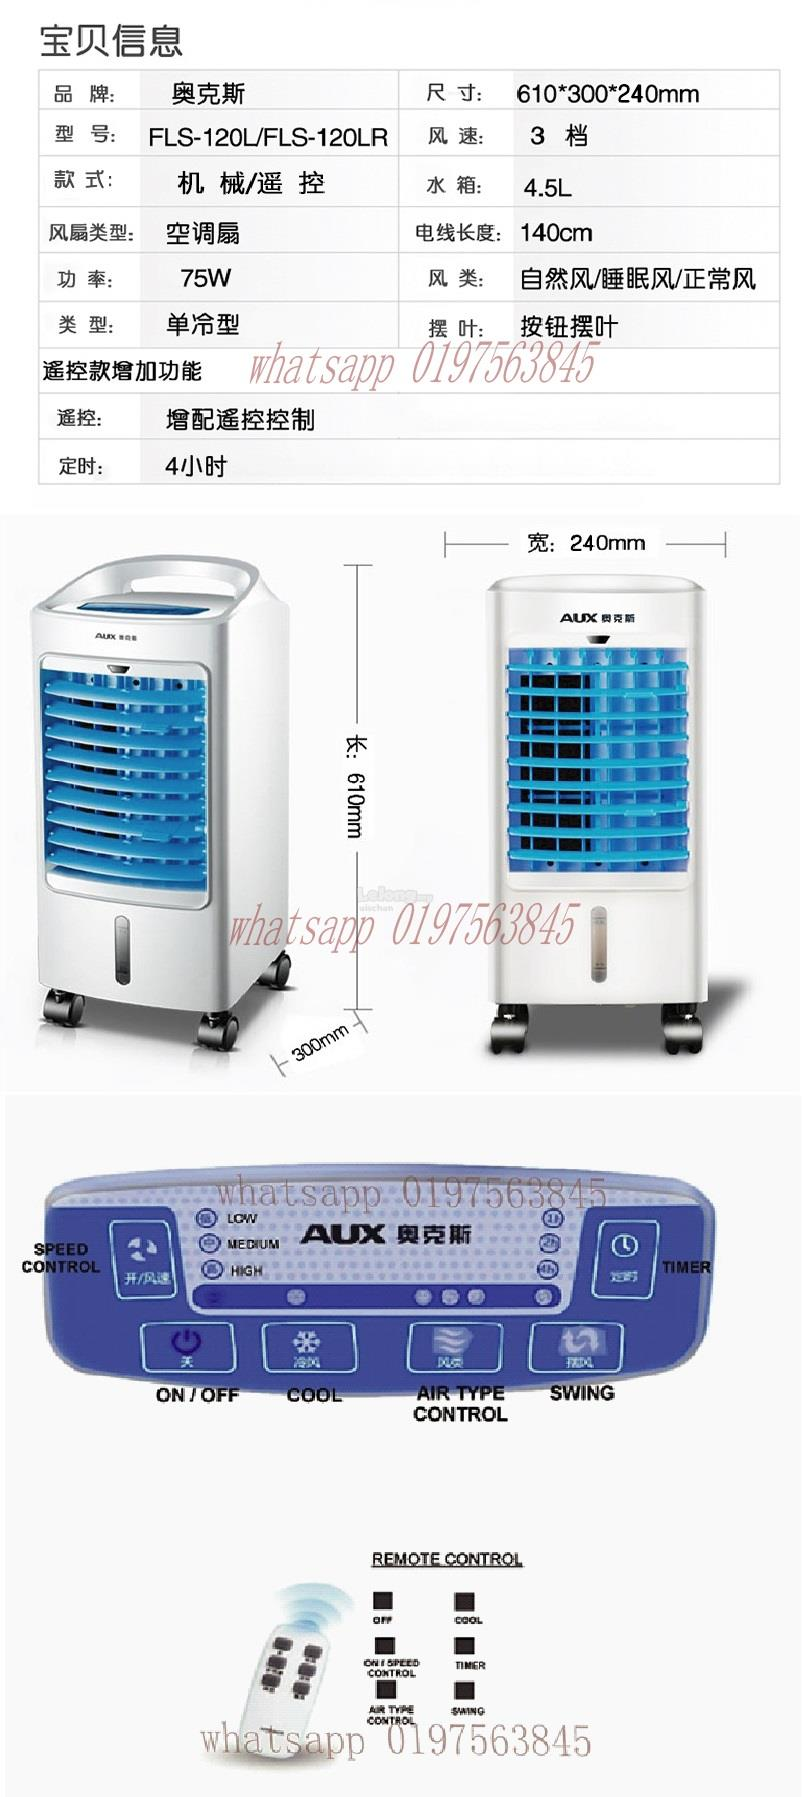 Portable Air Cooler with Air Purifier and Humidifier FLS 120R